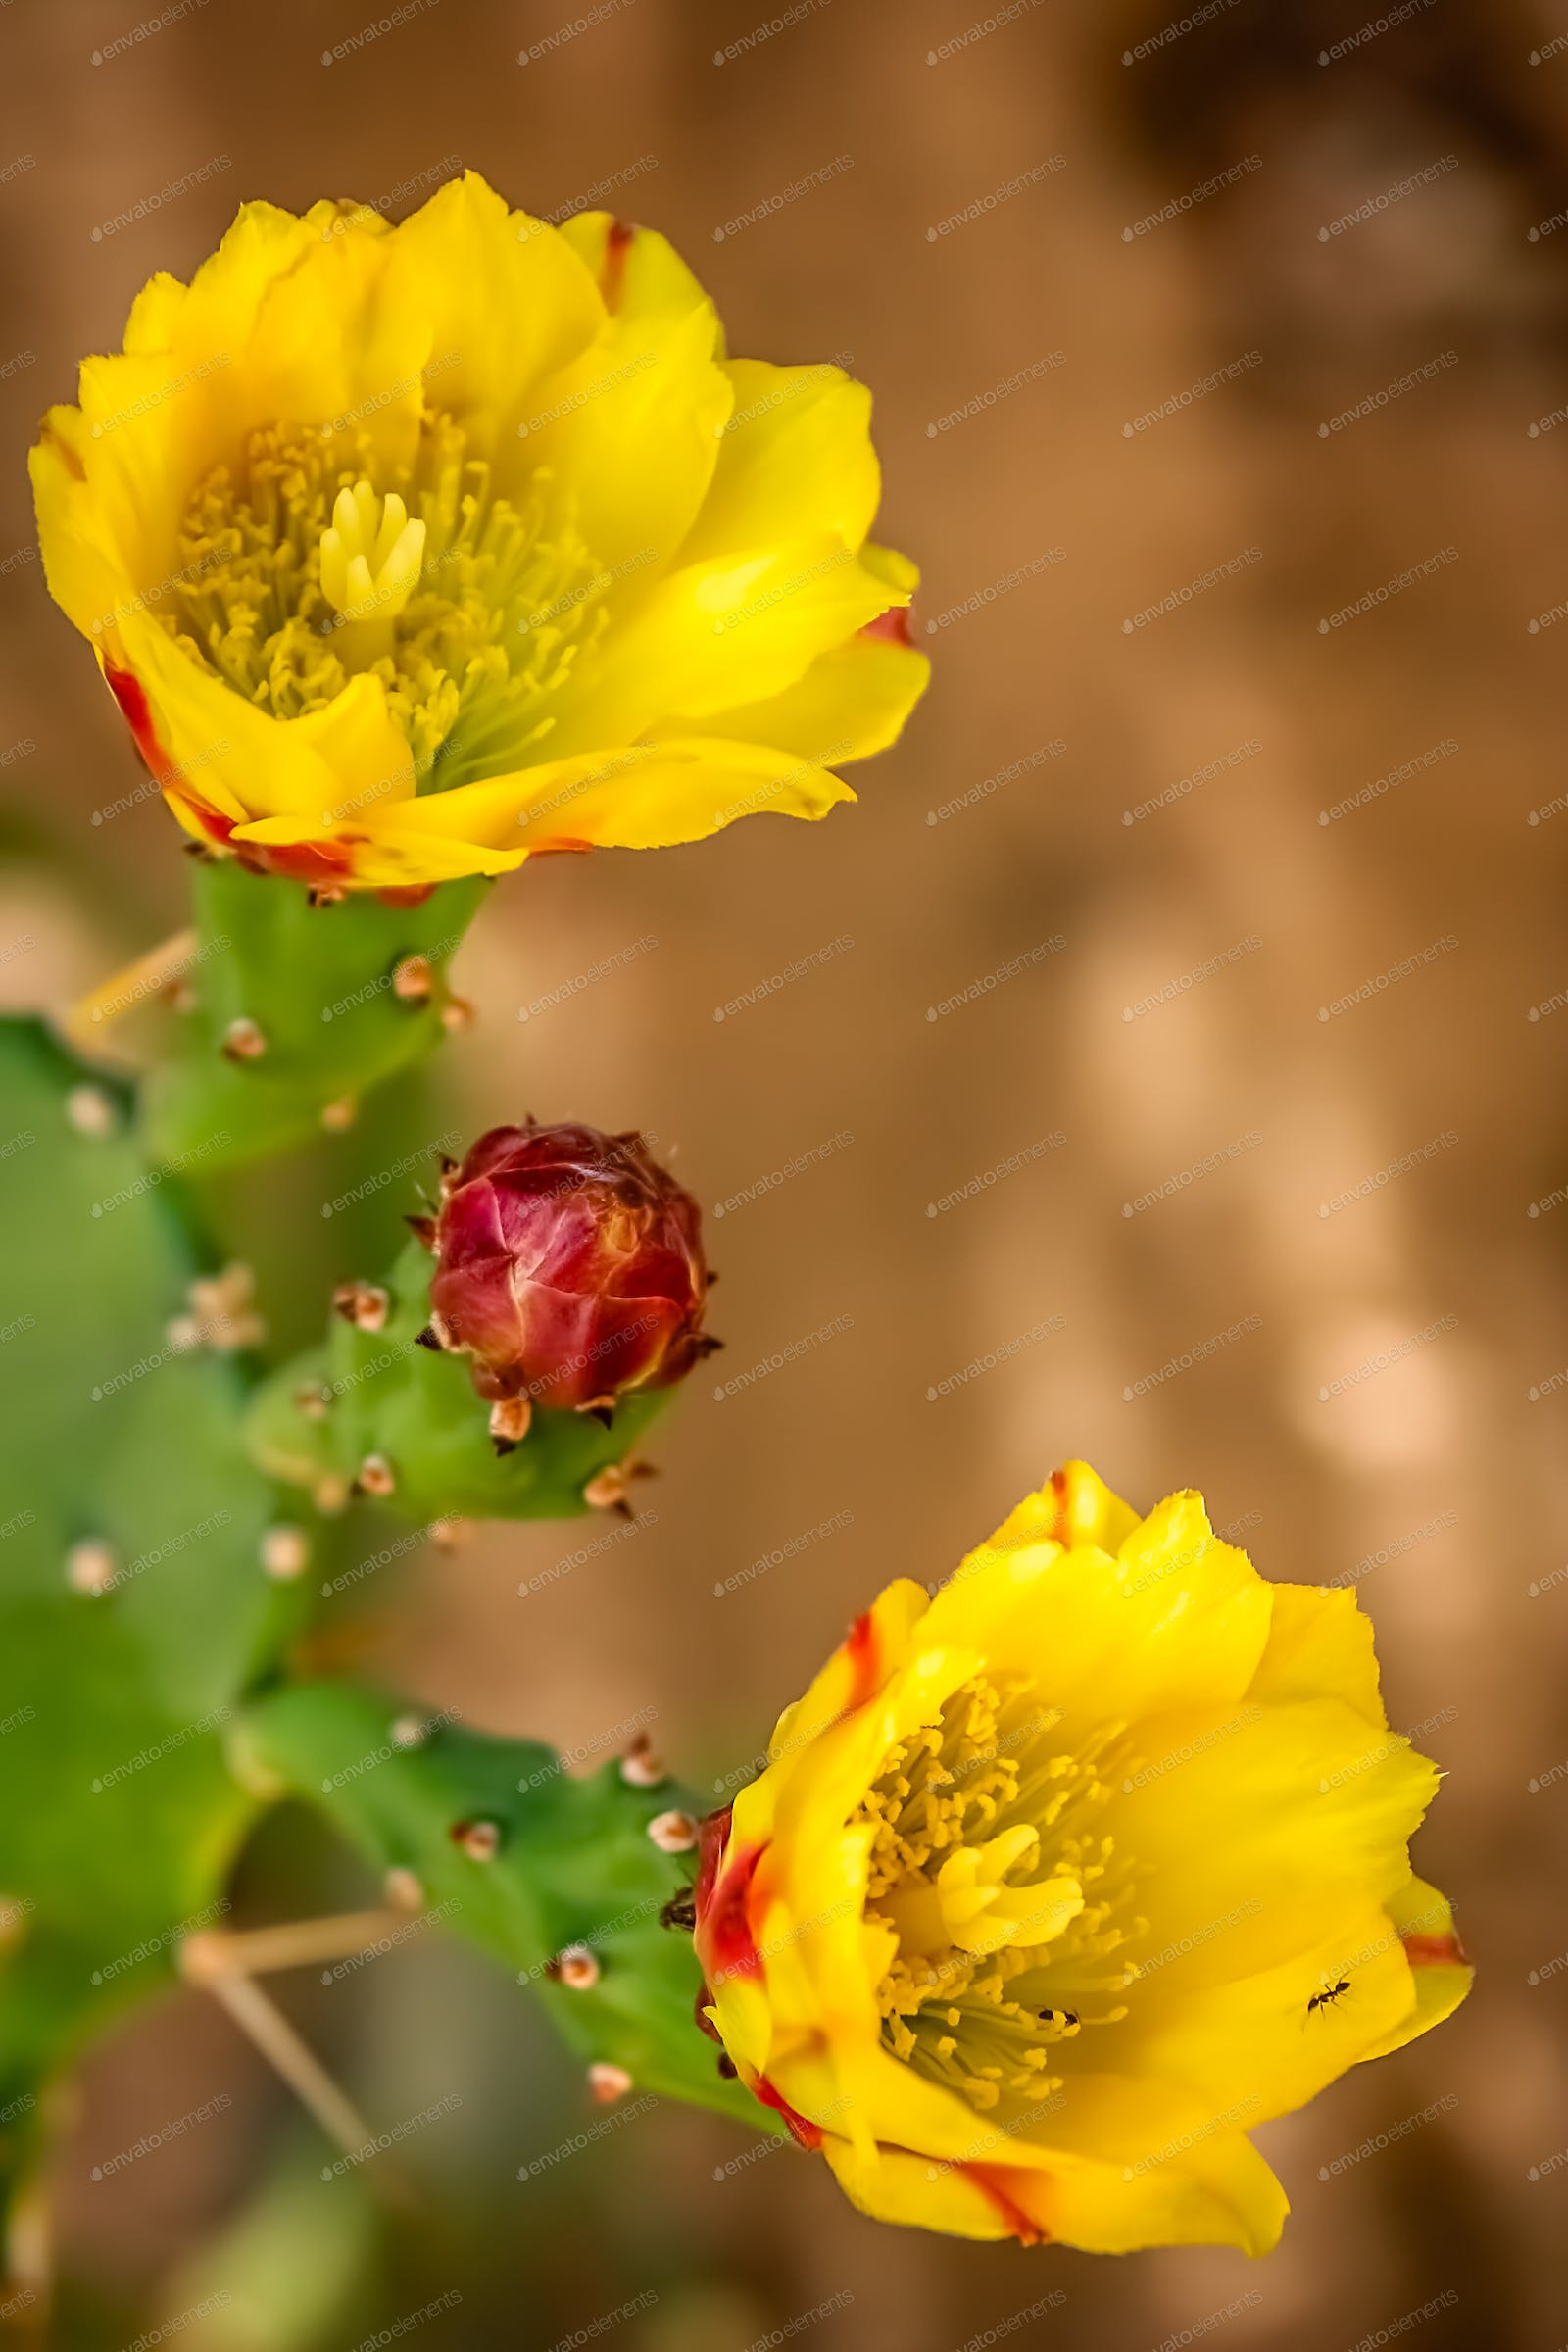 Yellow Flowers Of A Blooming Cactus Photo By Pawopa3336 On Envato